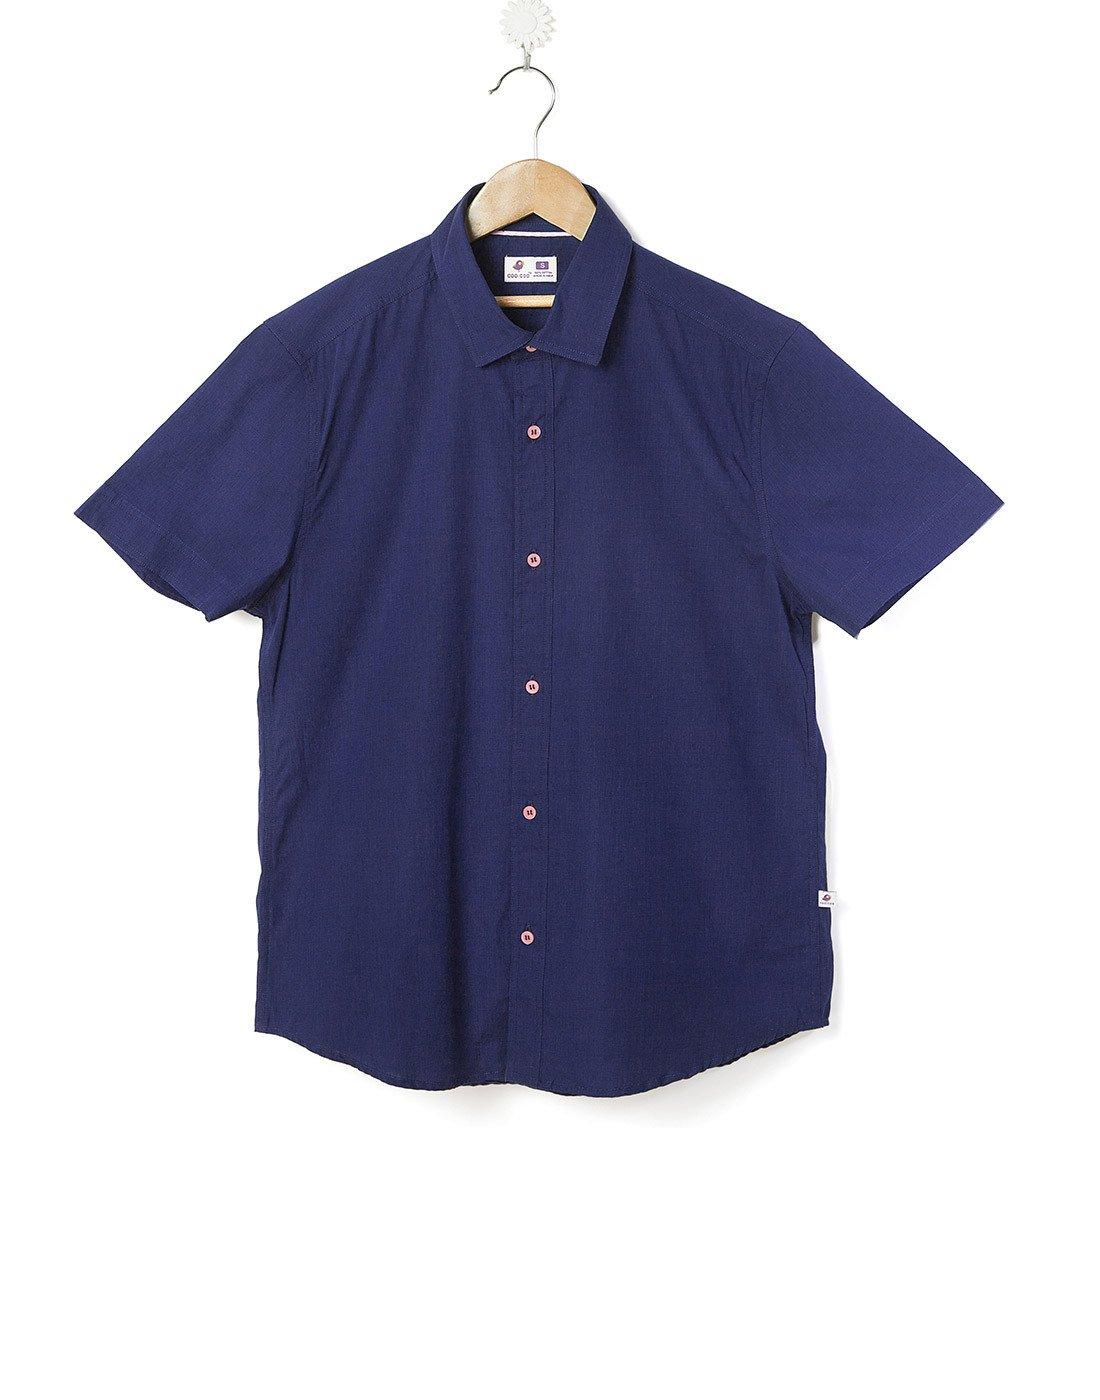 Cotton Fil a Fil Shirt